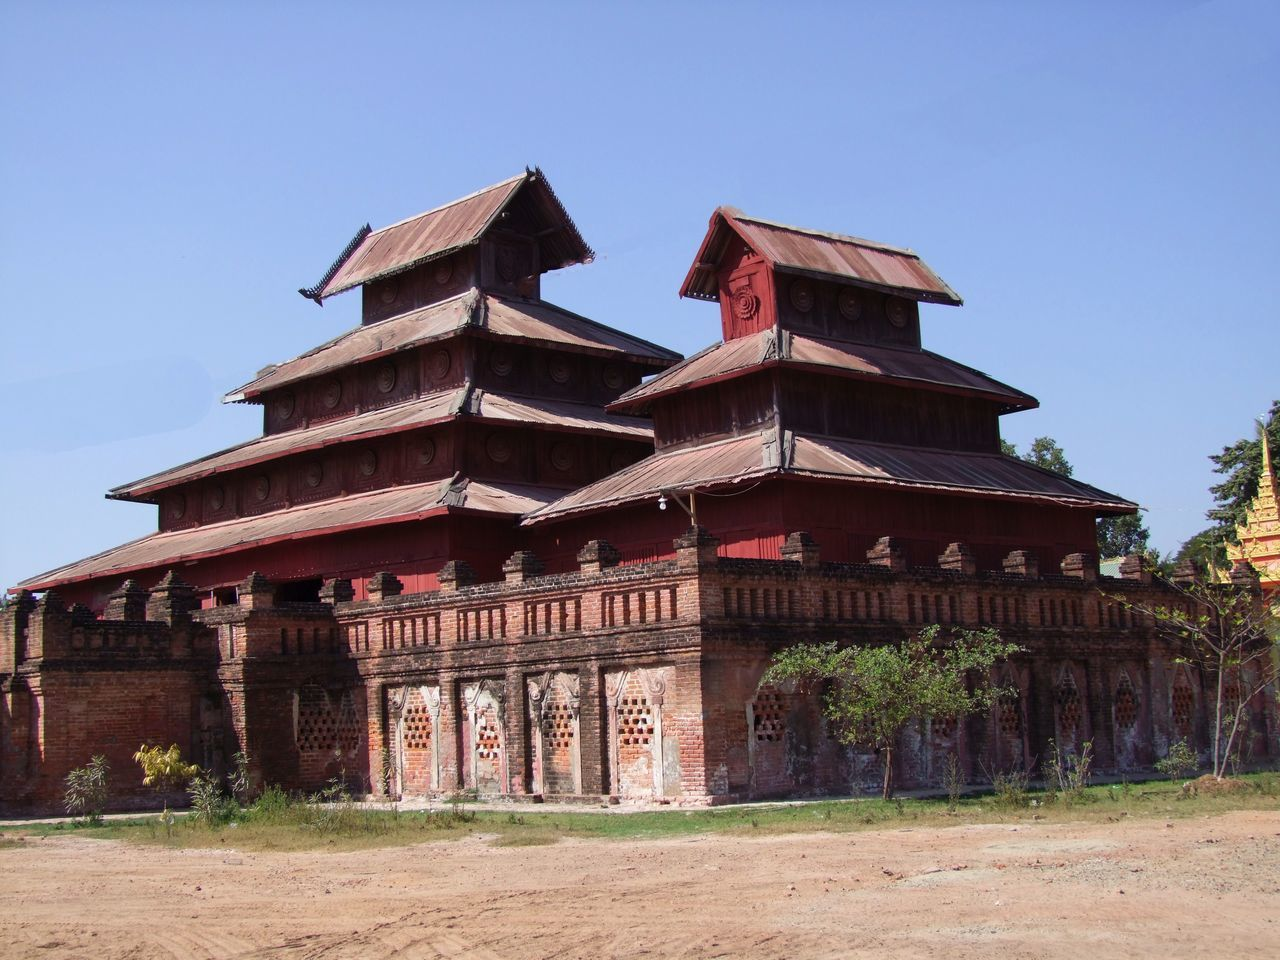 Old Wooden Monastery Blue Sky Buddhism Buddhist Architecture Buddhist Culture Buddhist Monastery Buddhist School Building Exterior Built Structure Composition History Monastery Myanmar No People Old Building  Outdoor Photography Red Colour Religion Salay Sunlight And Shade Teak Building Teak Wood Tourism Tourist Attraction  Travel Destination Wooden Building